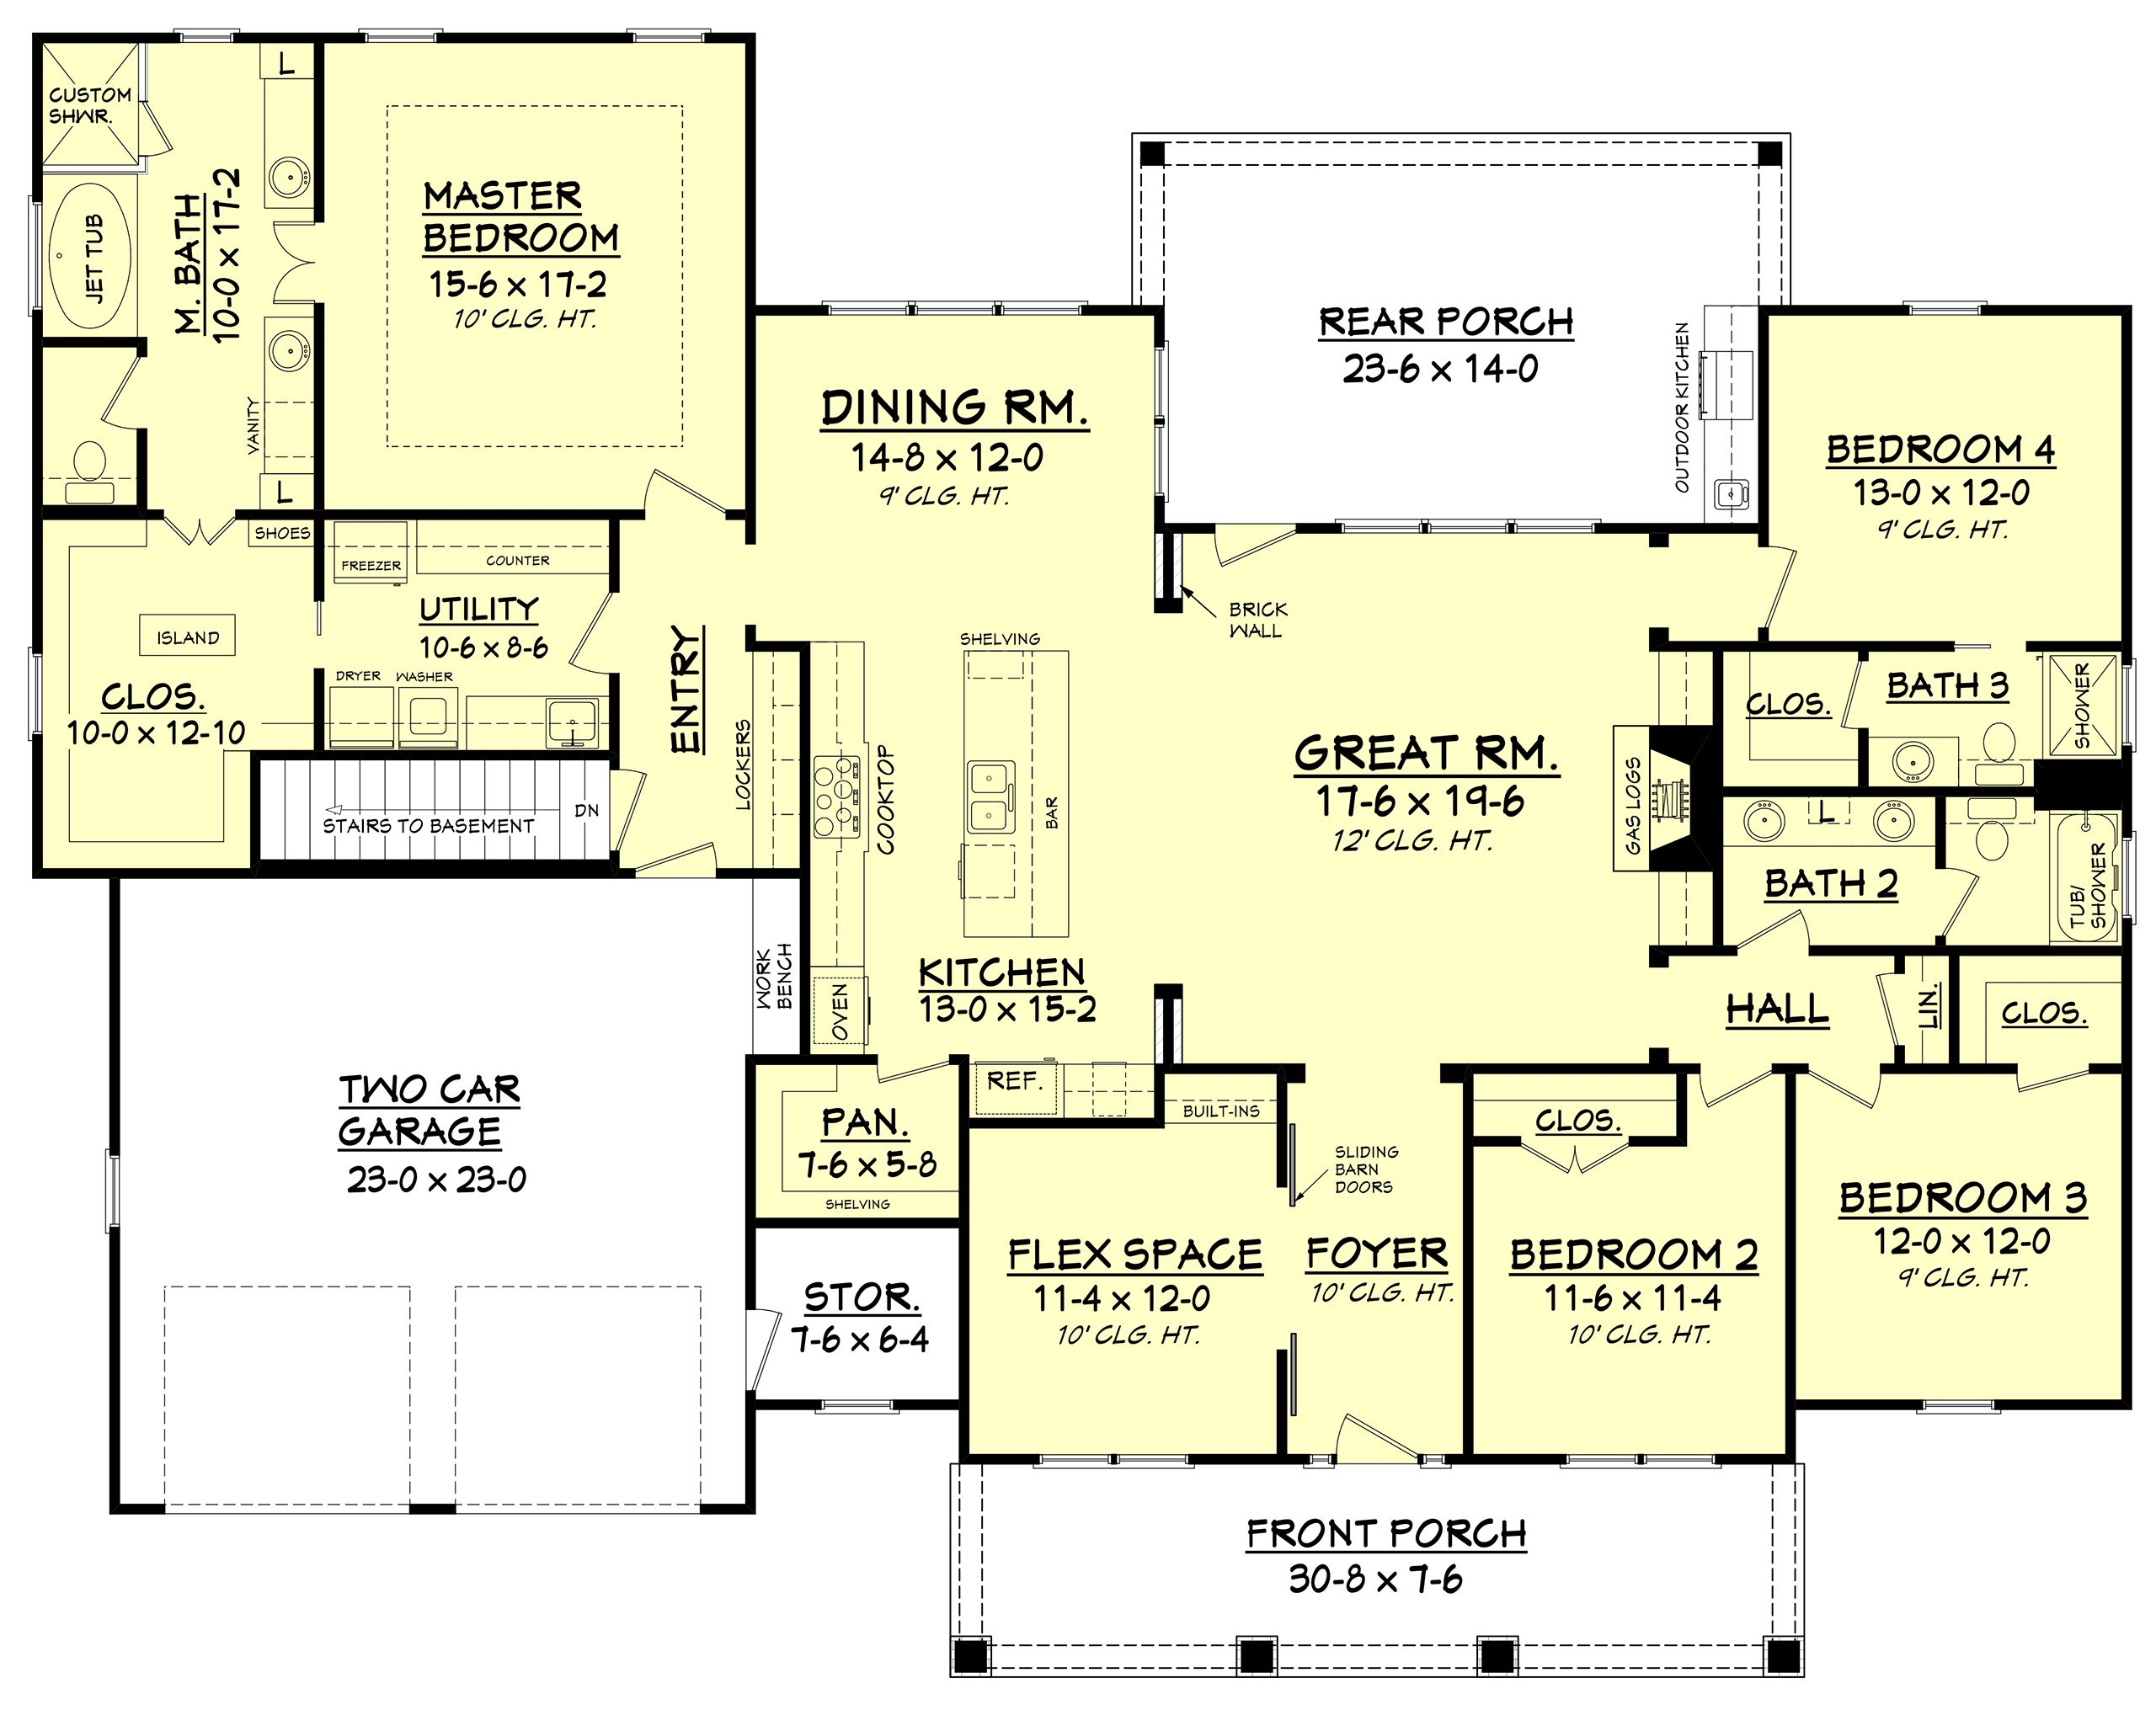 Craftsman style house plan 4 beds 3 baths 2639 sq ft for Large craftsman style home plans